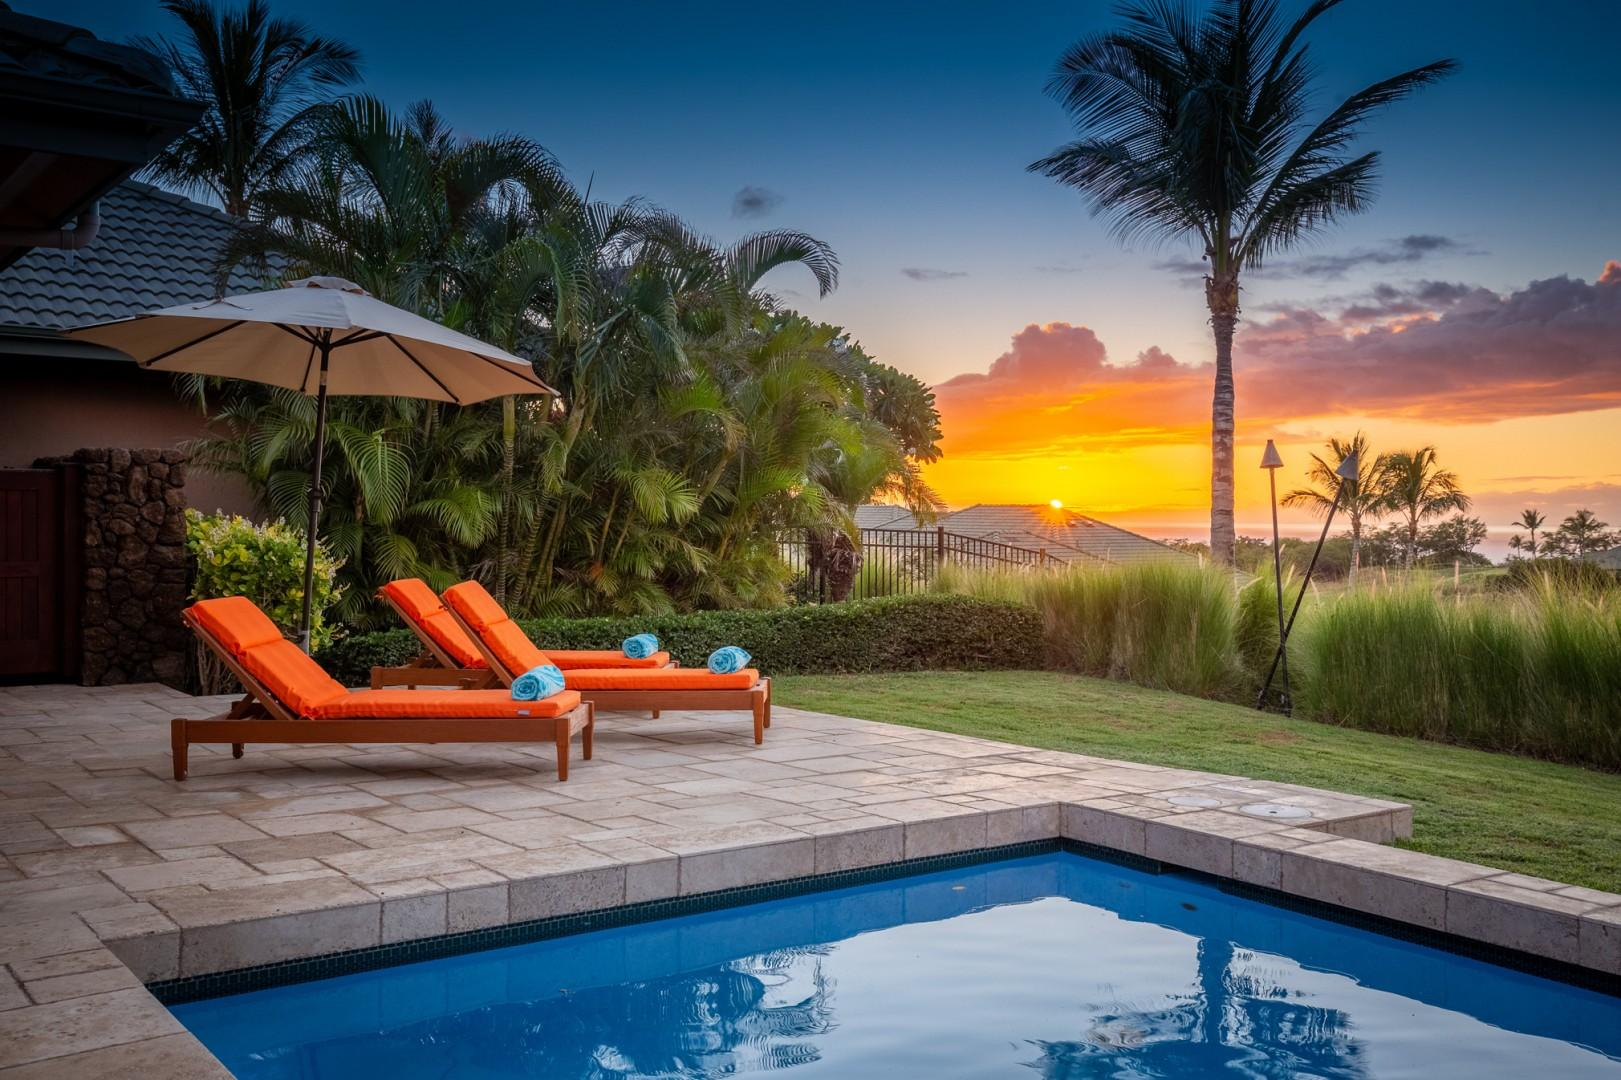 Sunsets, palm trees, and your own private tiki torches for after the sun goes down are all on offer.